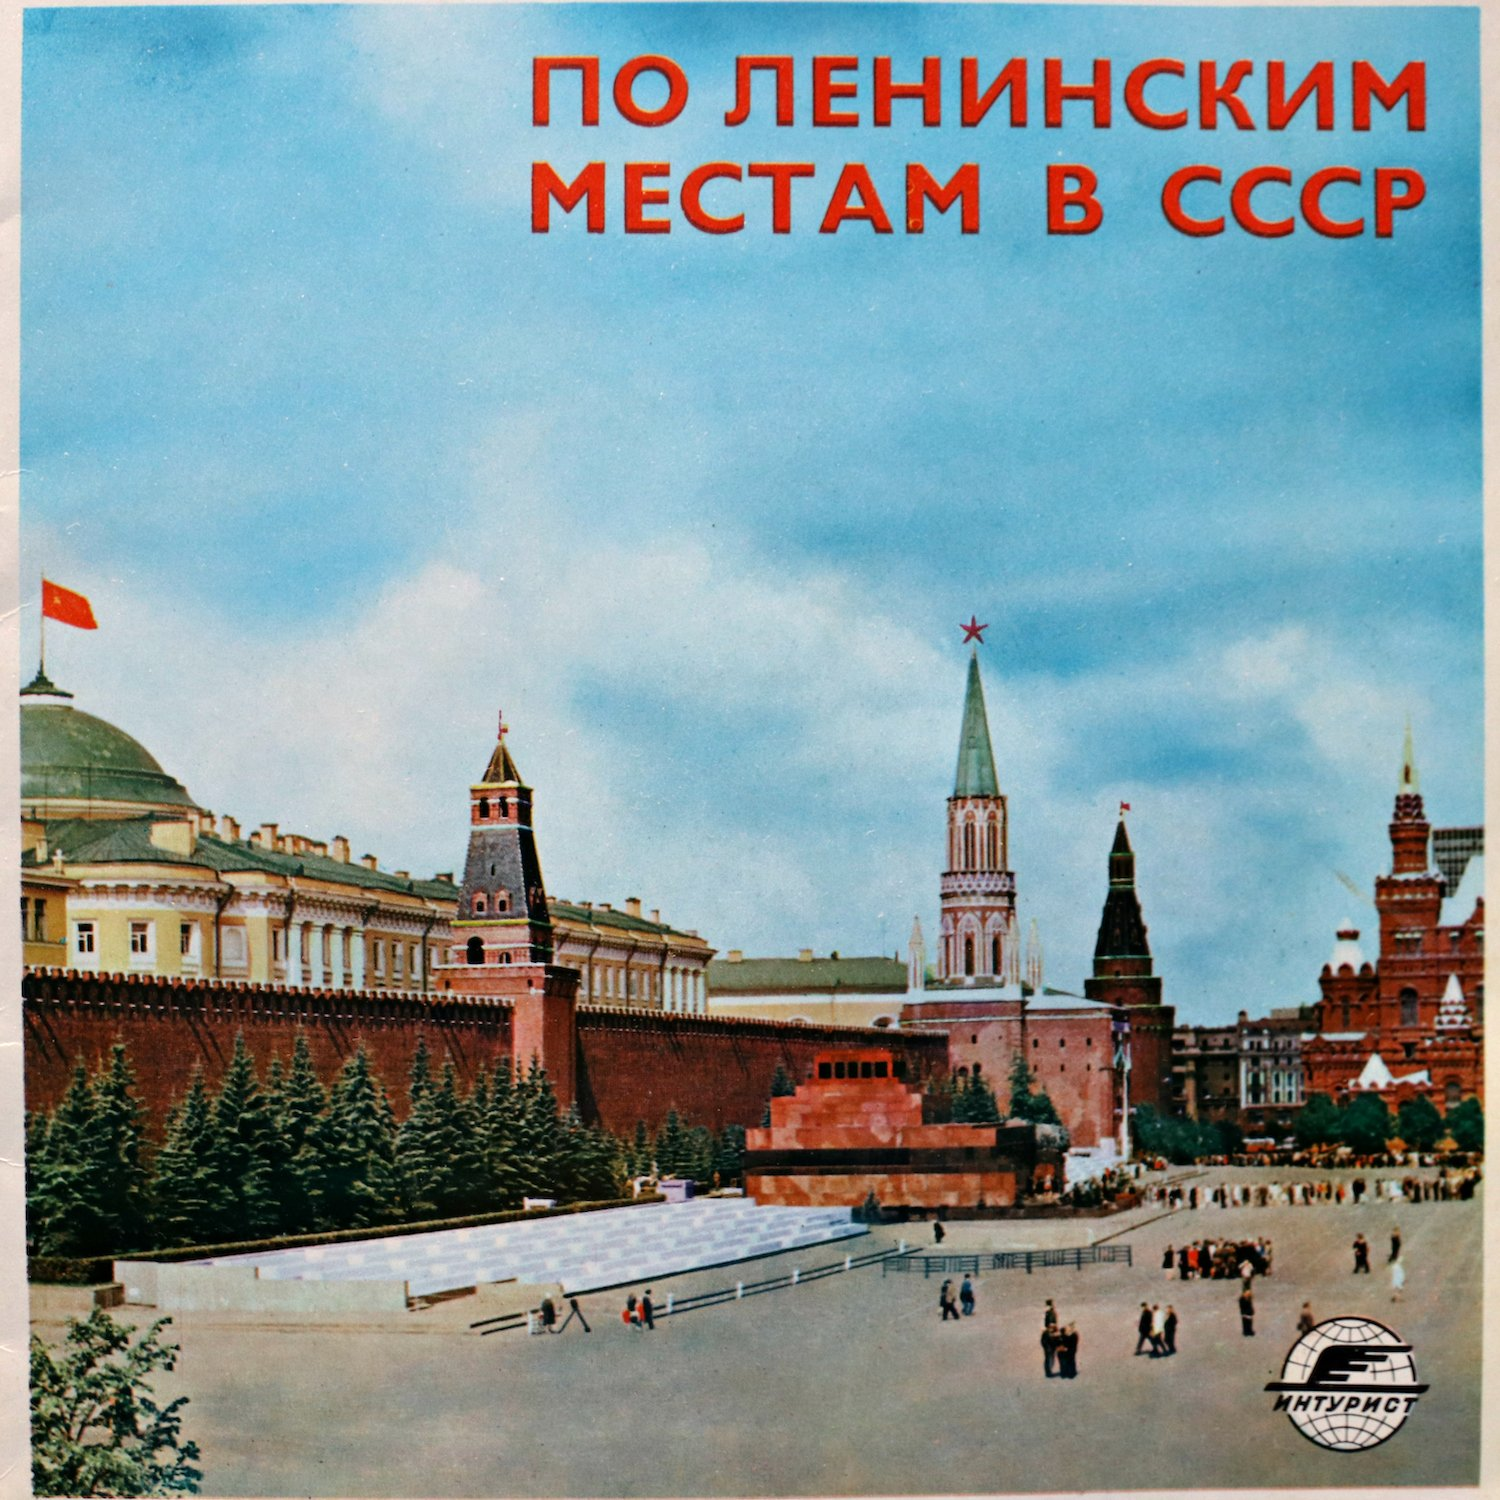 A Soviet guide to The Lenin-related places of the Soviet Union.